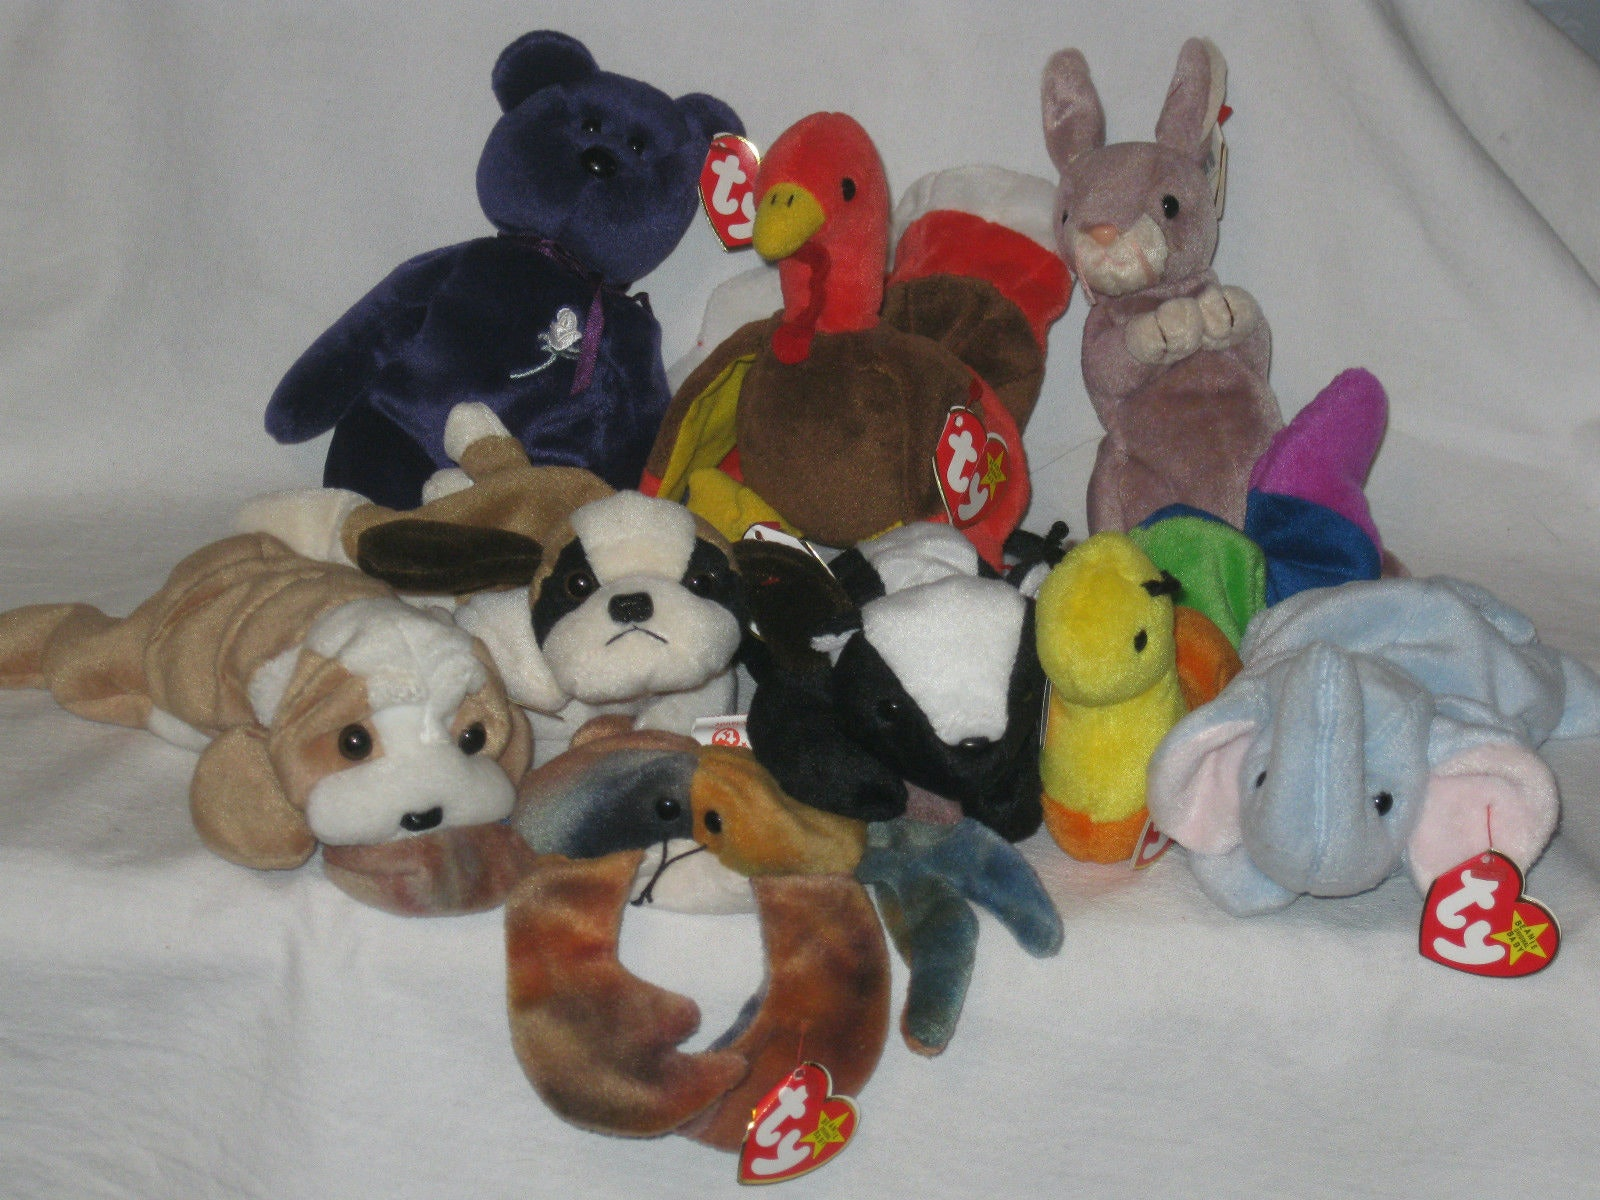 The Most Valuable Beanie Babies Could Be Hiding in Your Closet 2149fede790